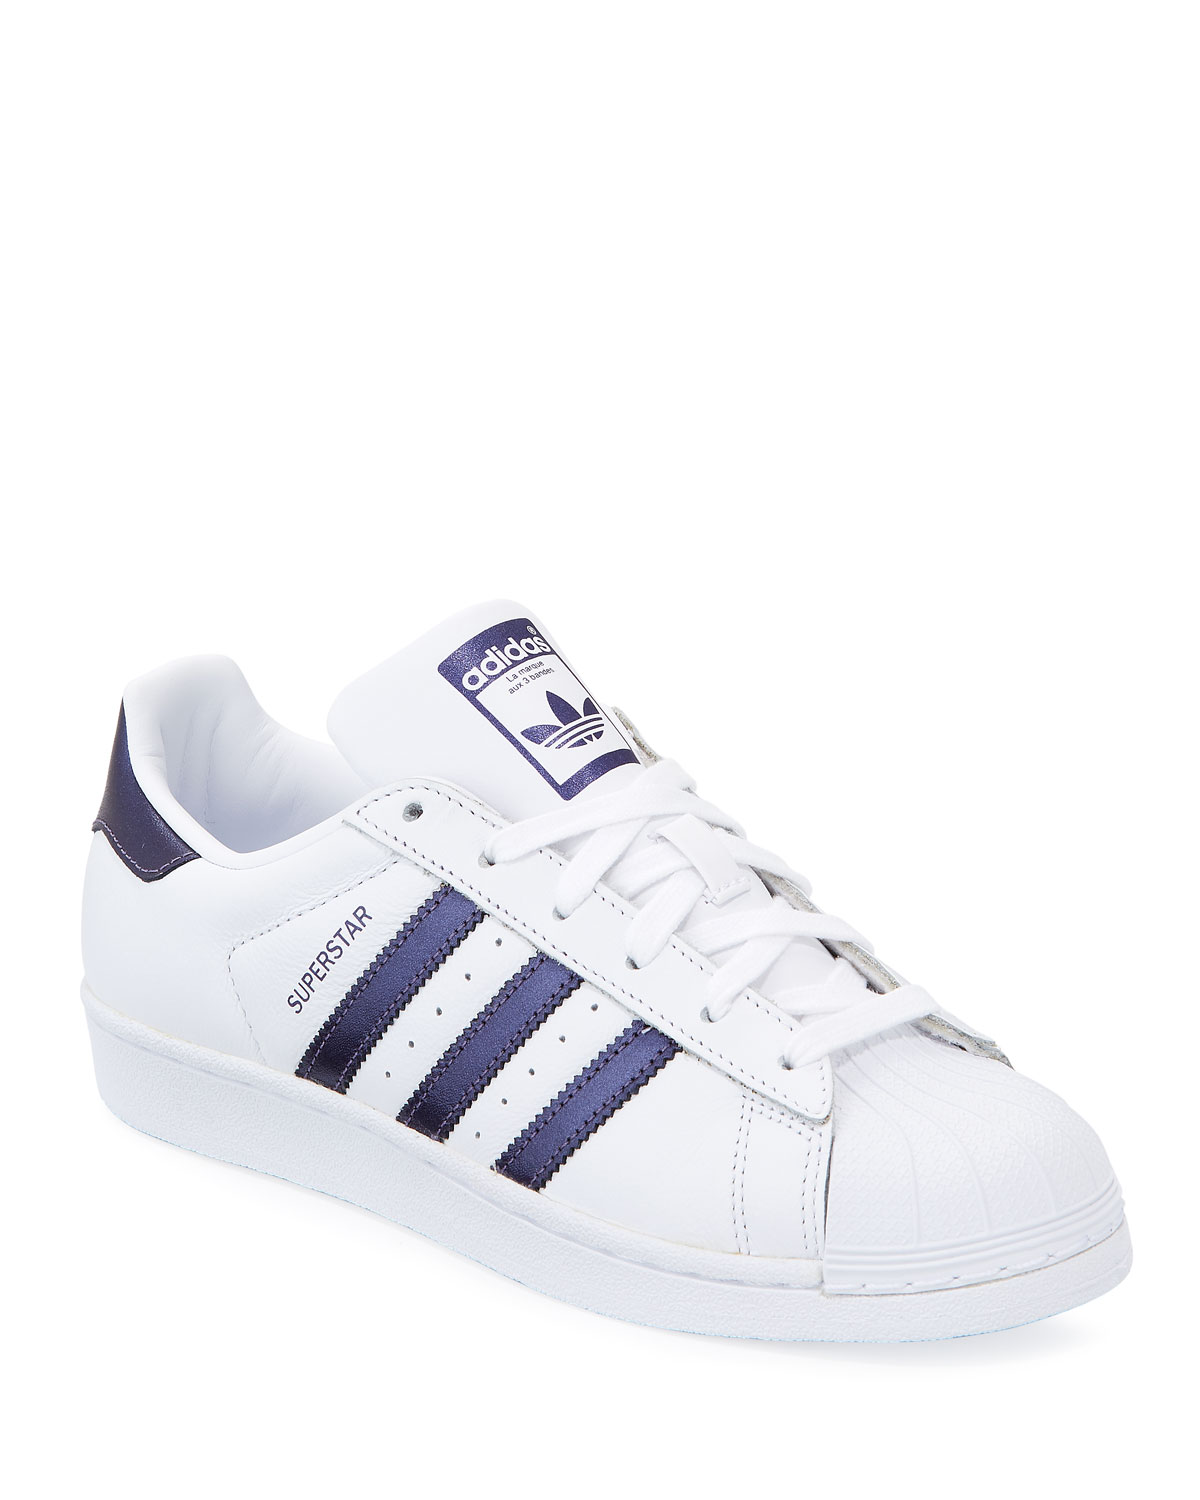 0b22af778be Adidas Superstar Lace-Up 3-Stripes® Sneakers